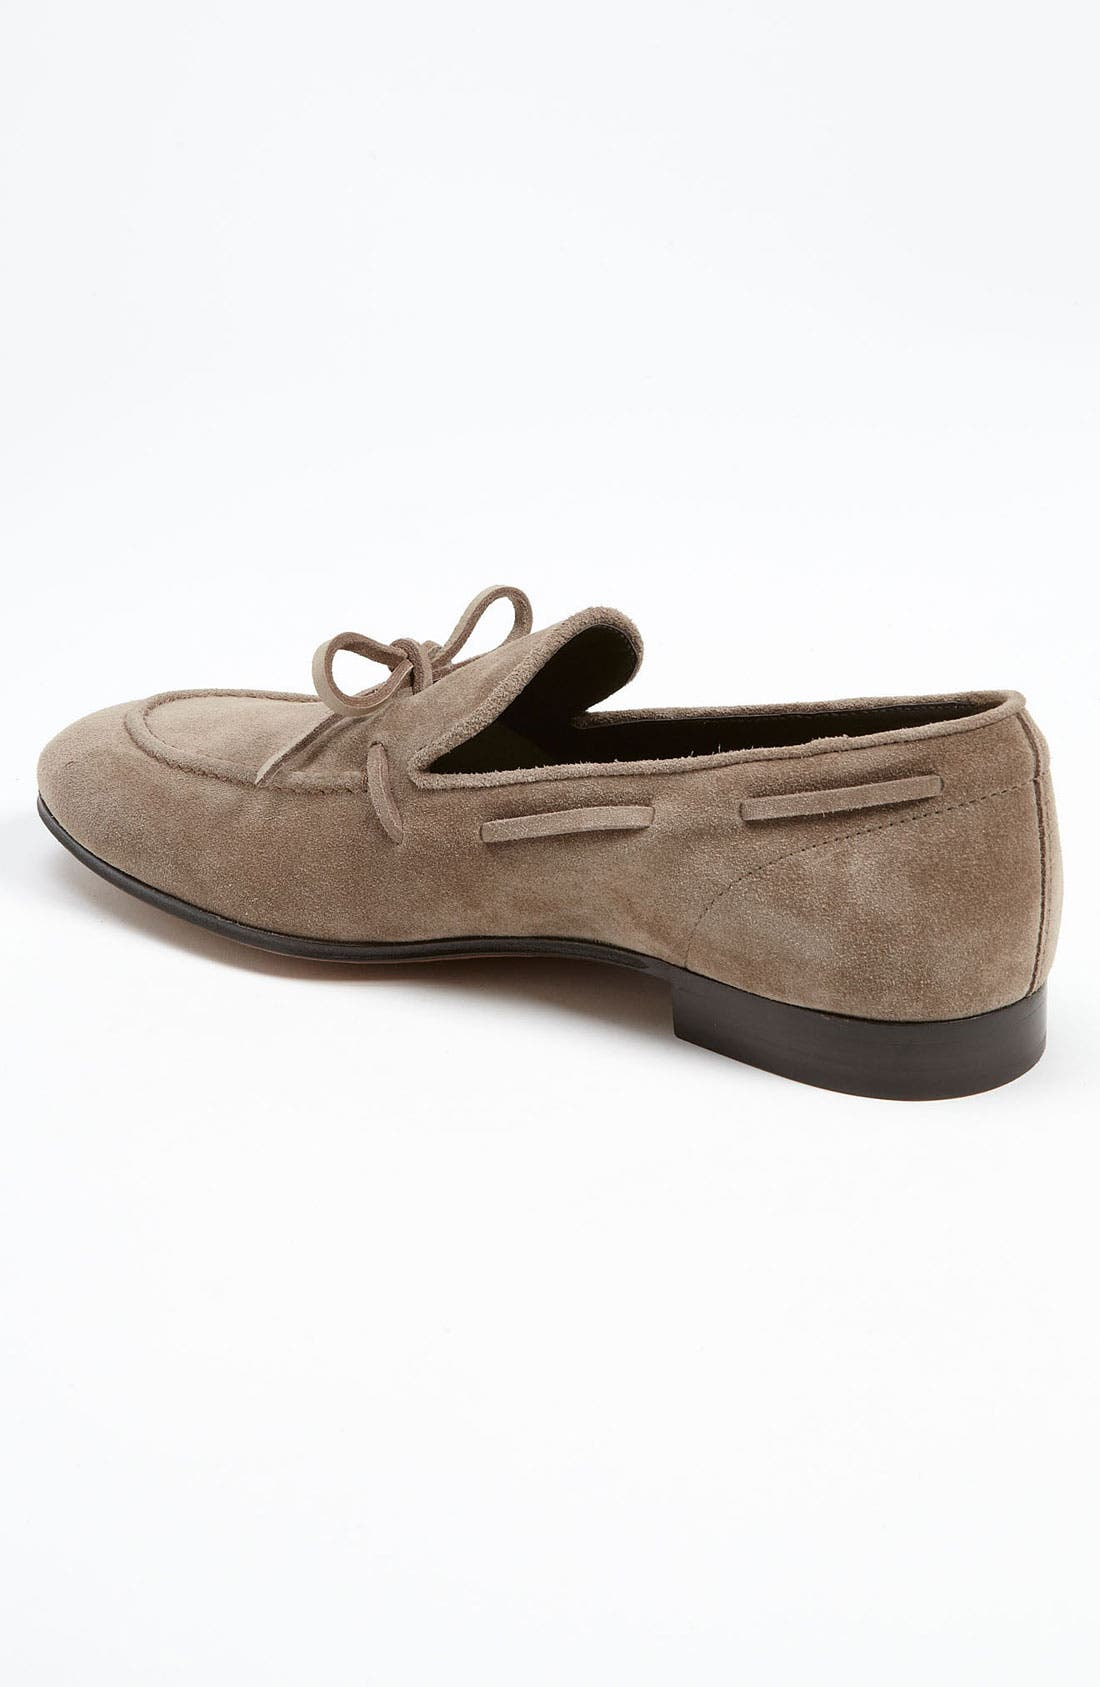 Suede Loafer,                             Alternate thumbnail 3, color,                             249